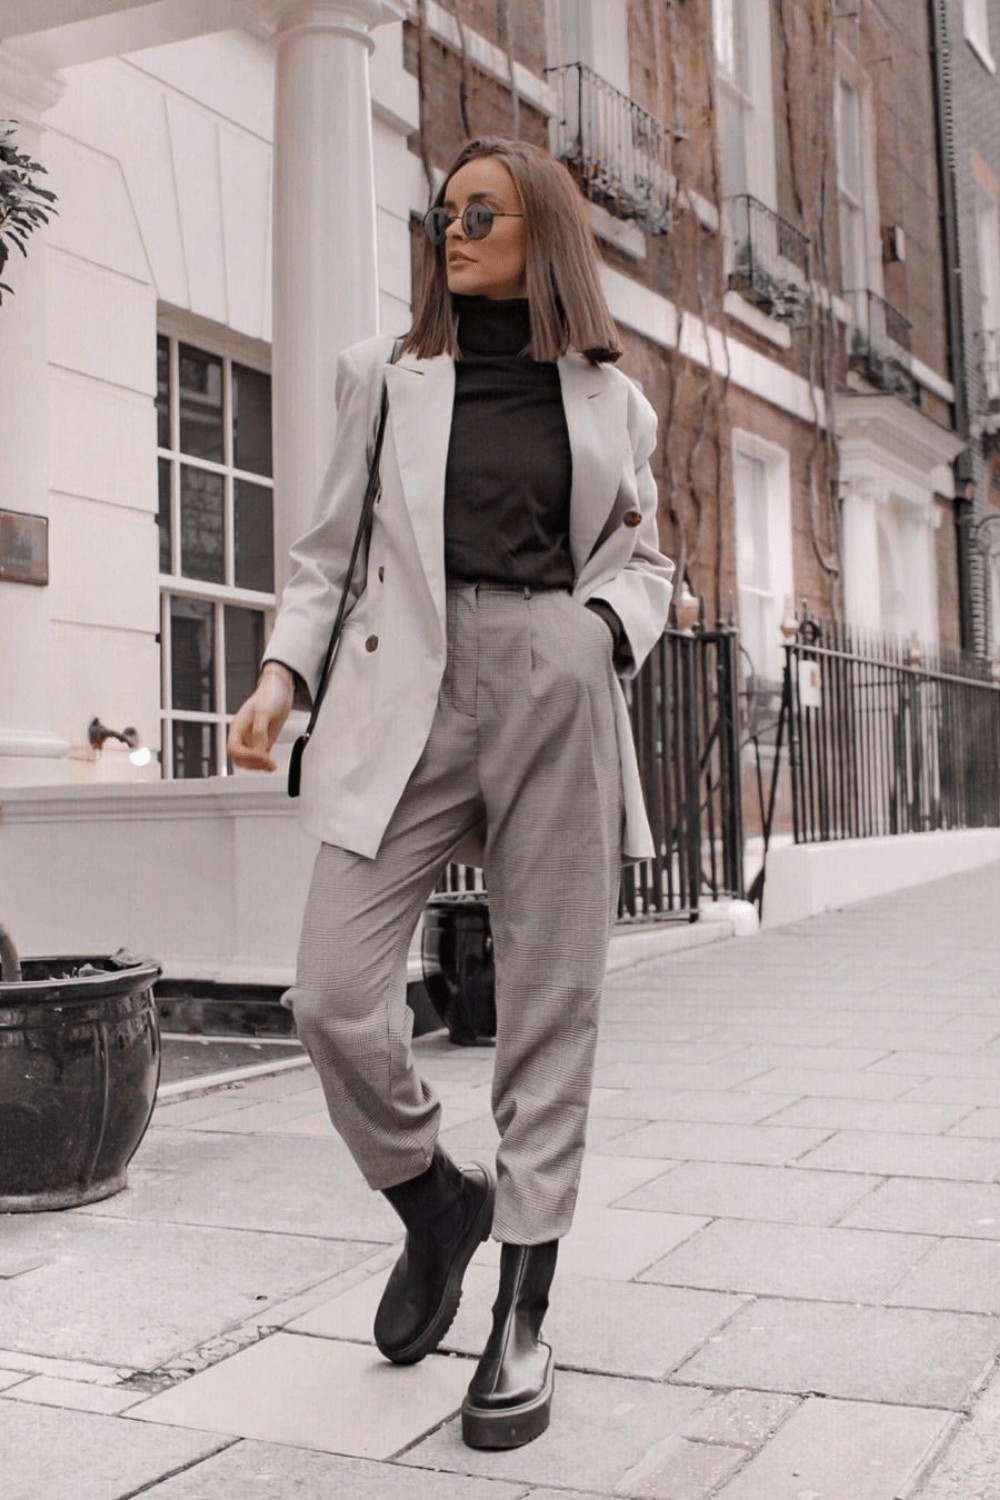 20 Trendy Fall Outfits For The Best Fall Outfit Inspiration ...